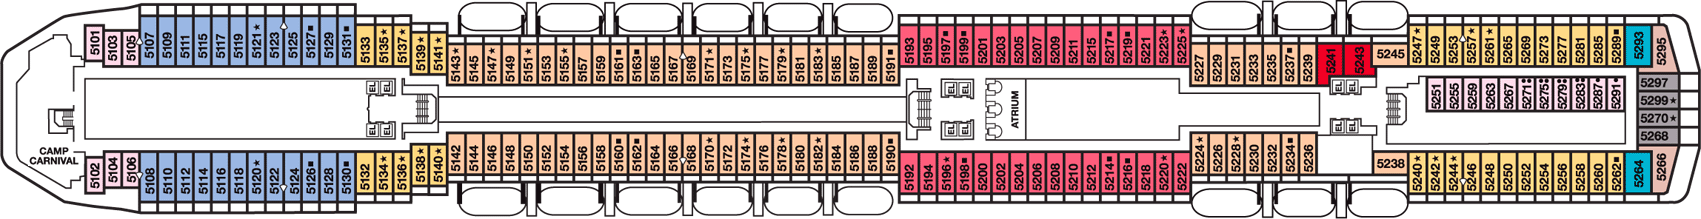 Carnival Miracle Deck Plans Cabins